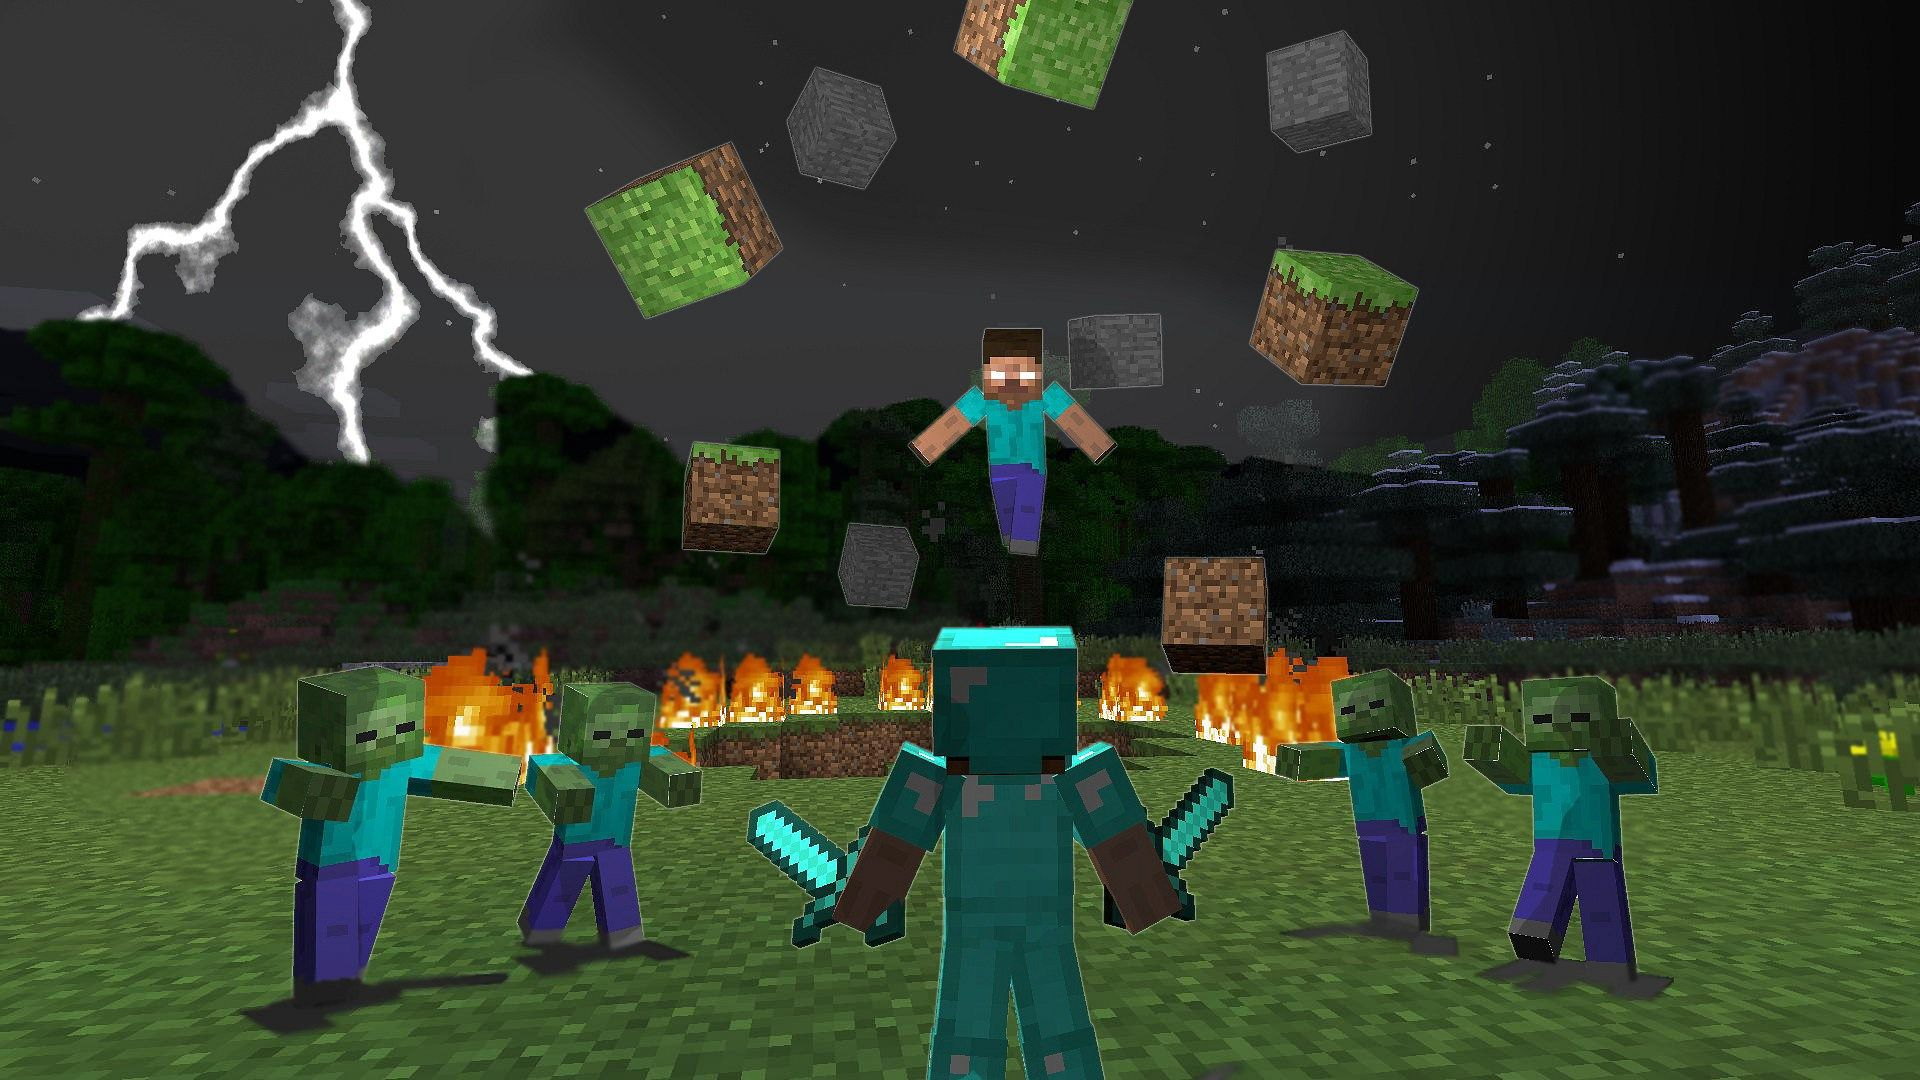 minecraft wallpaper pictures free - minecraft category